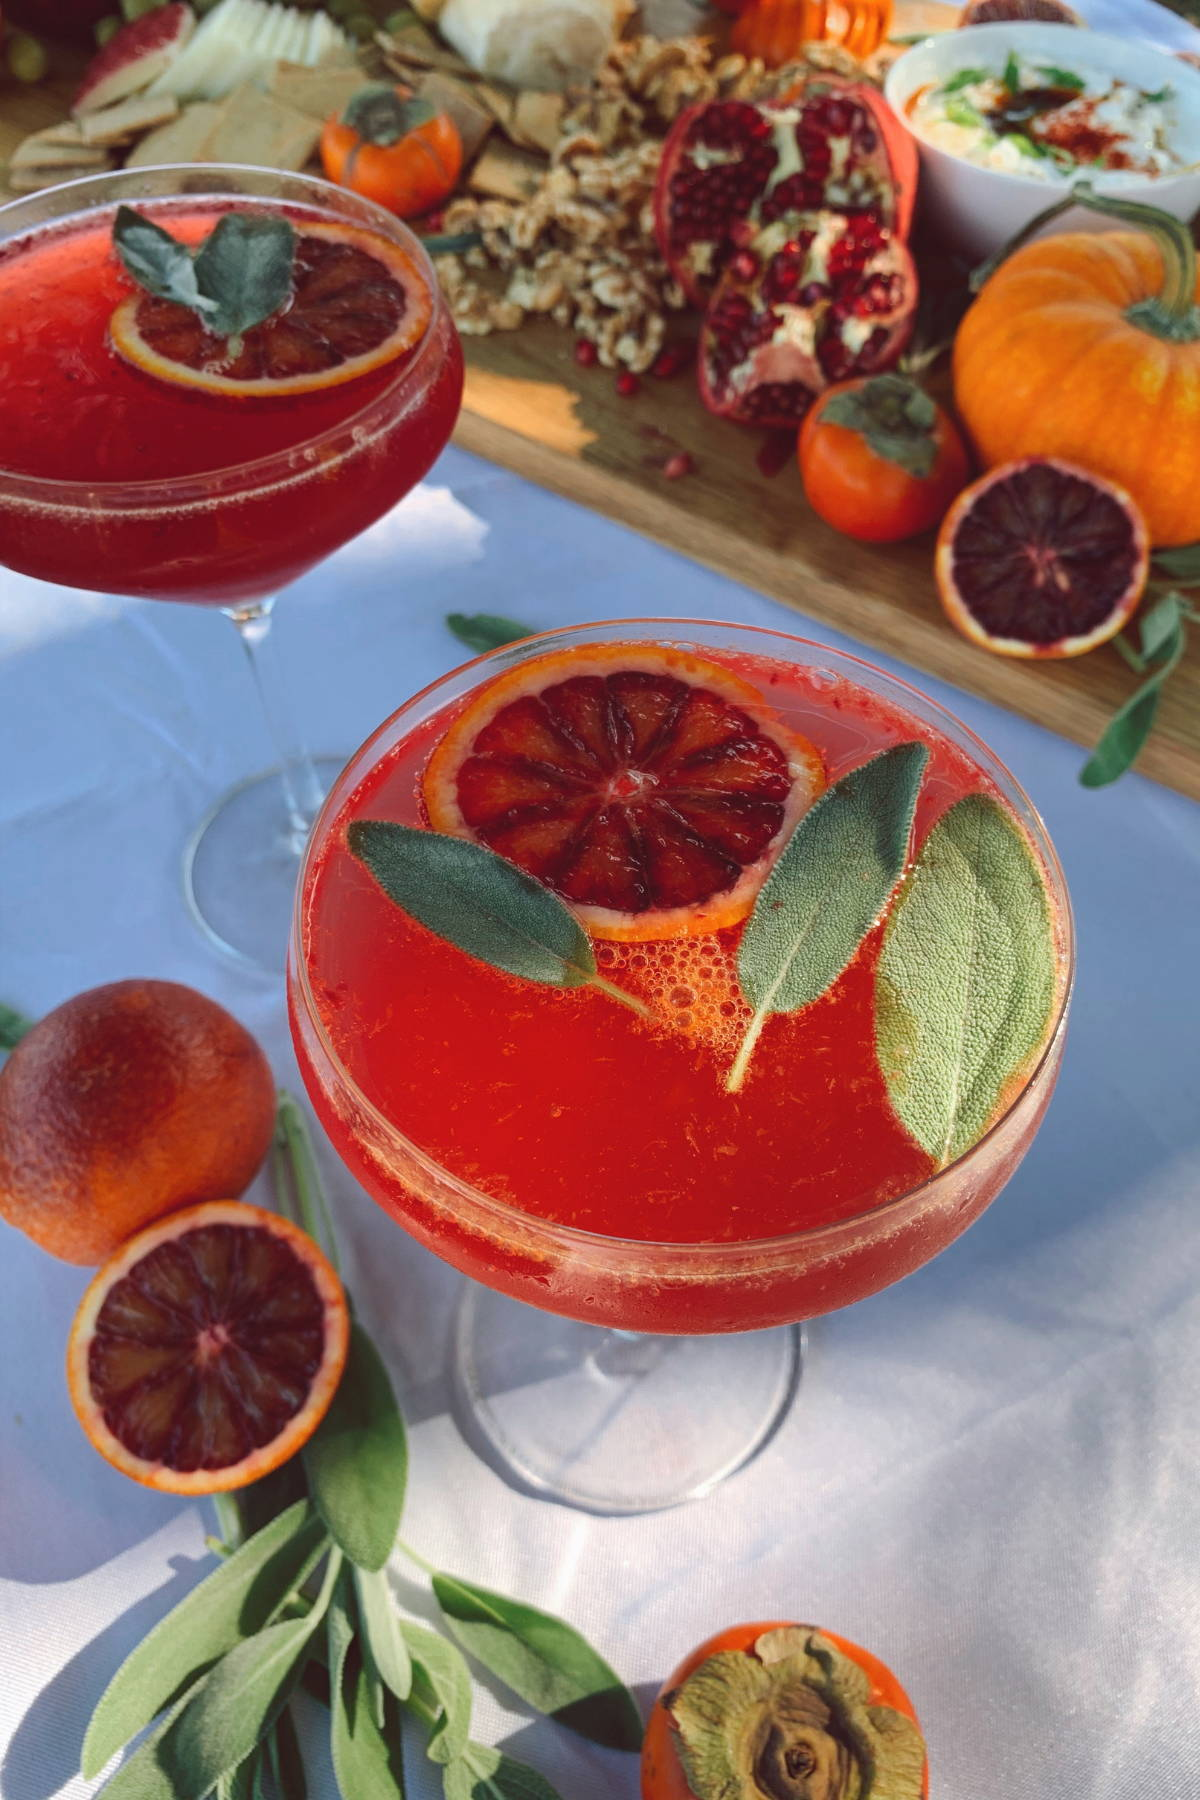 Blood orange mocktail in a coupe glass, surrounded by blood orange slices and pomegranate.